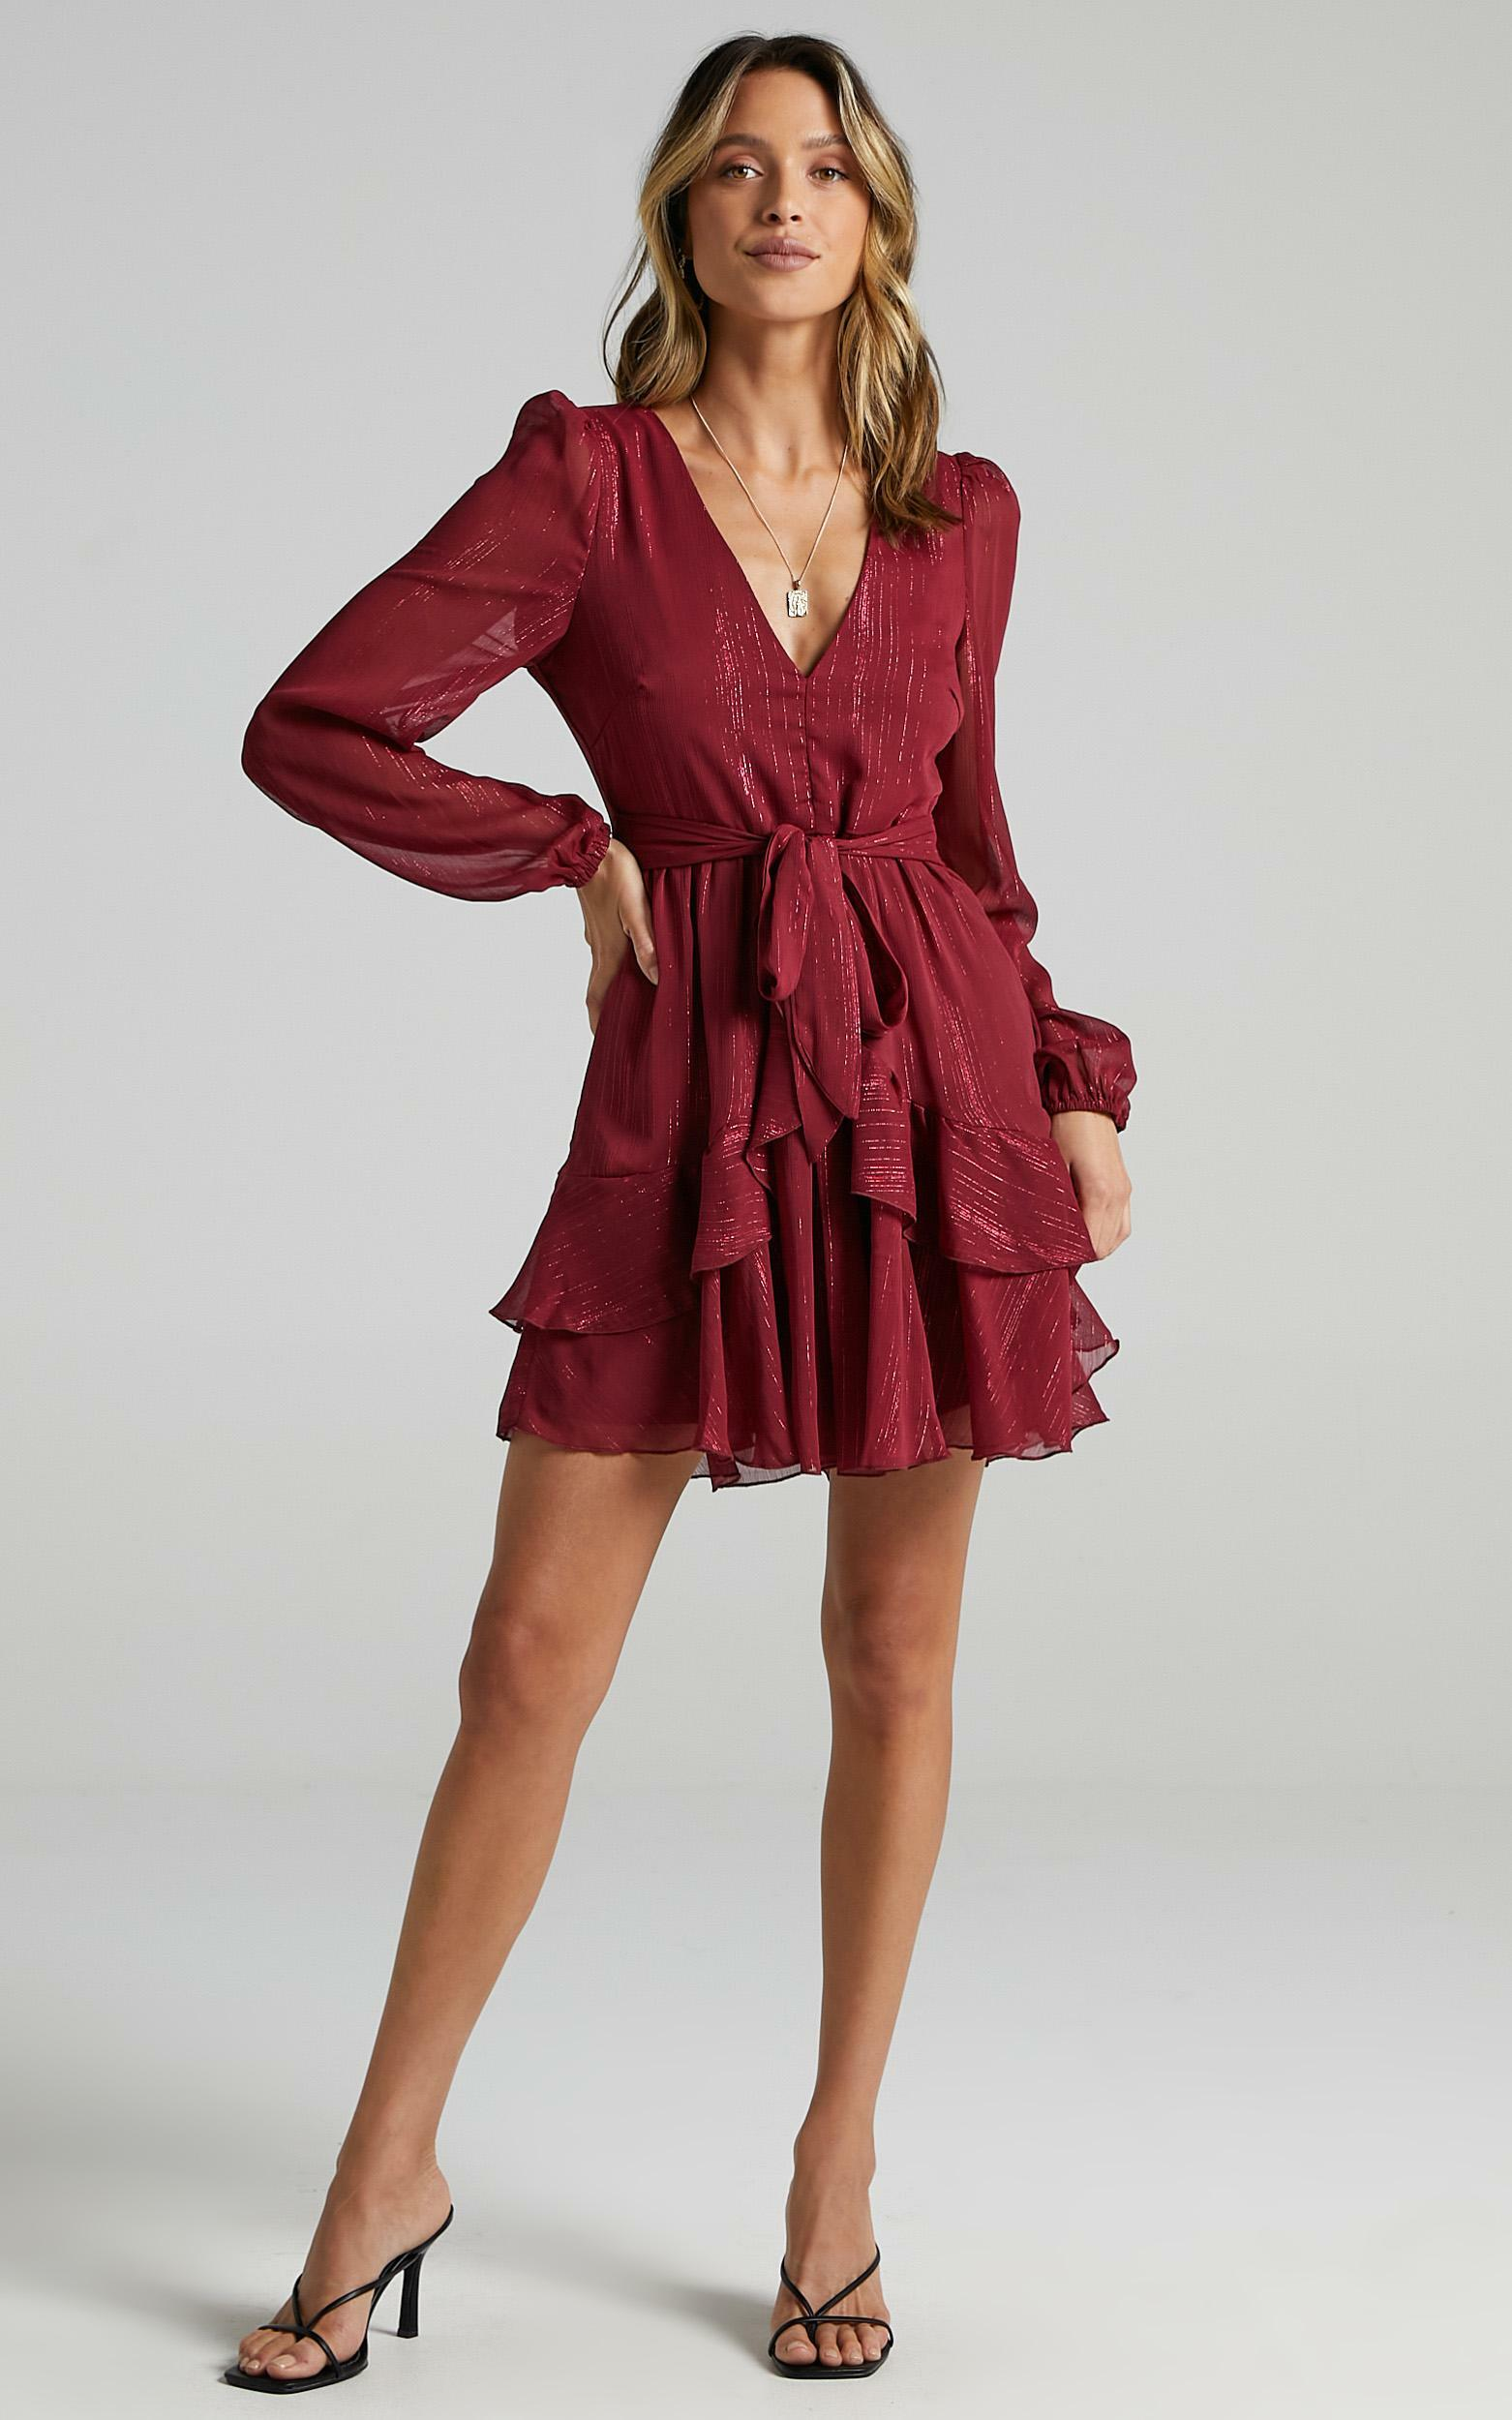 Eyes That Know Me Dress In wine - 20 (XXXXL), Wine, hi-res image number null